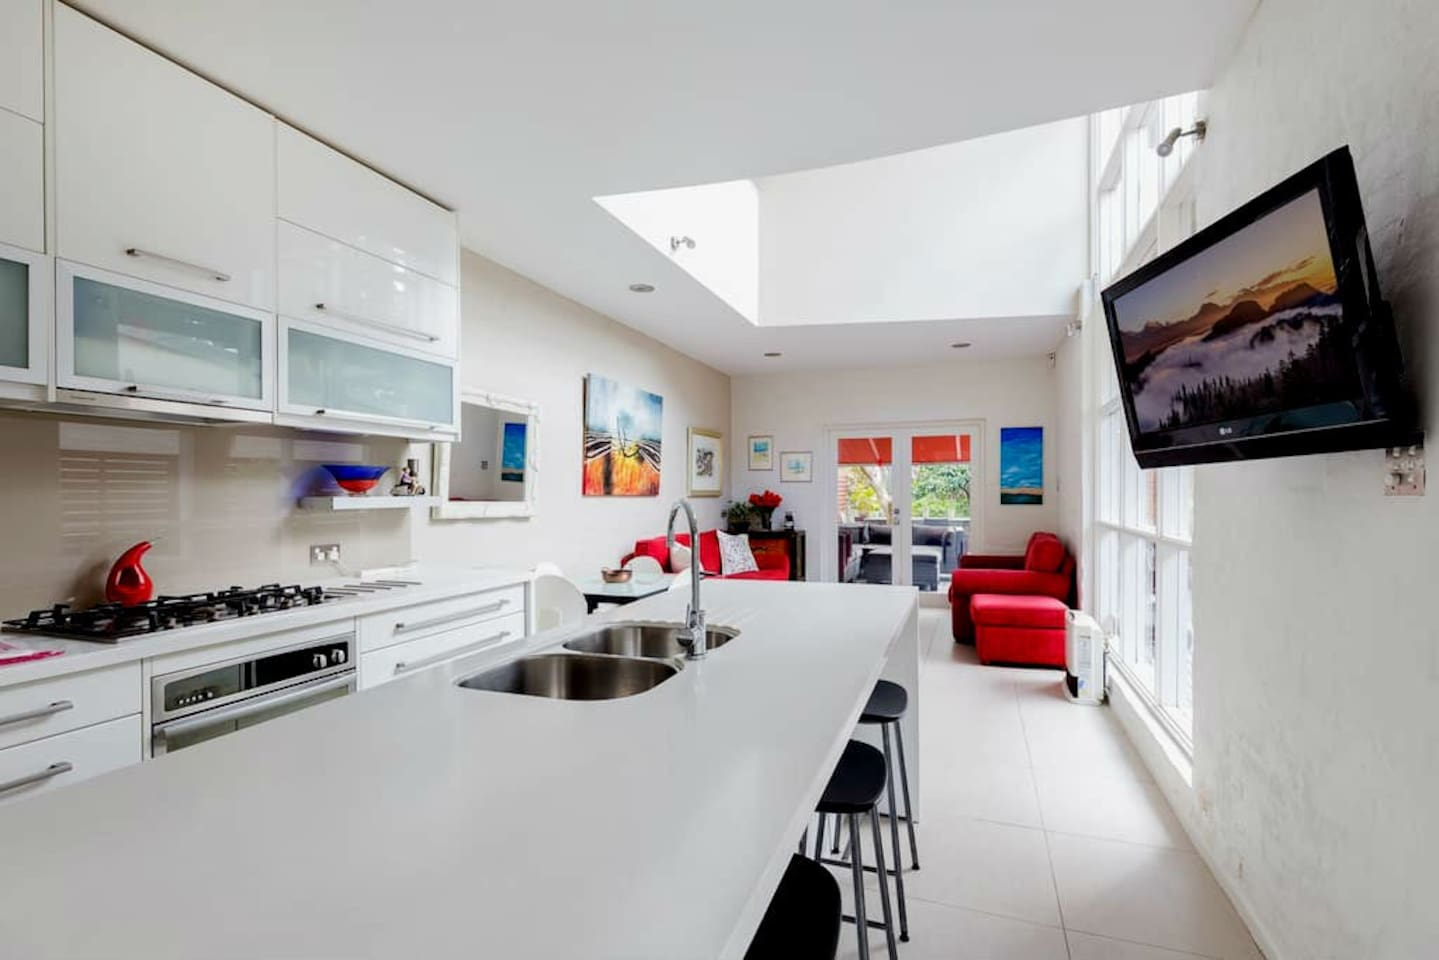 Bright and airy fully equipped kitchen with floating kitchen island.